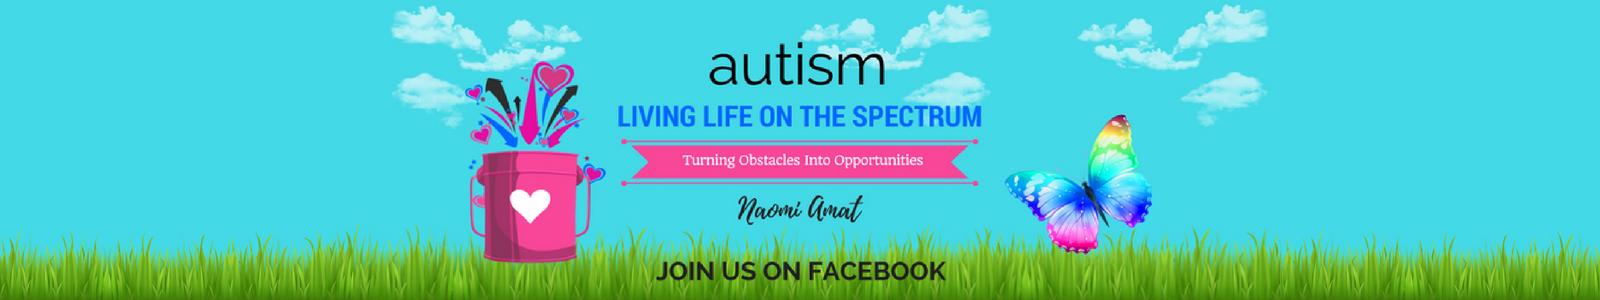 Autism Living Life on the Spectrum